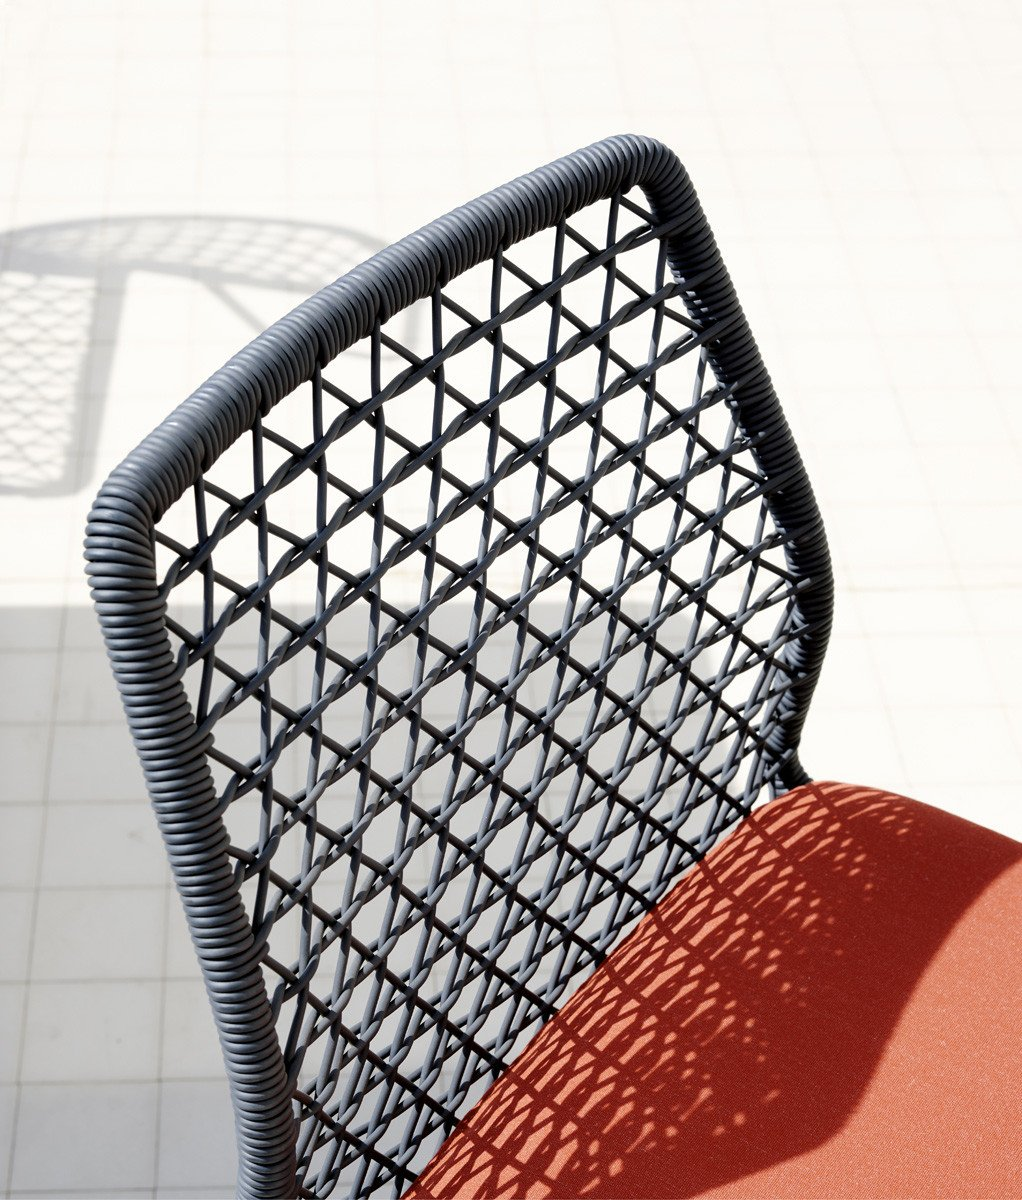 Vela Chair from Potocco, designed by Hannes Wettstein